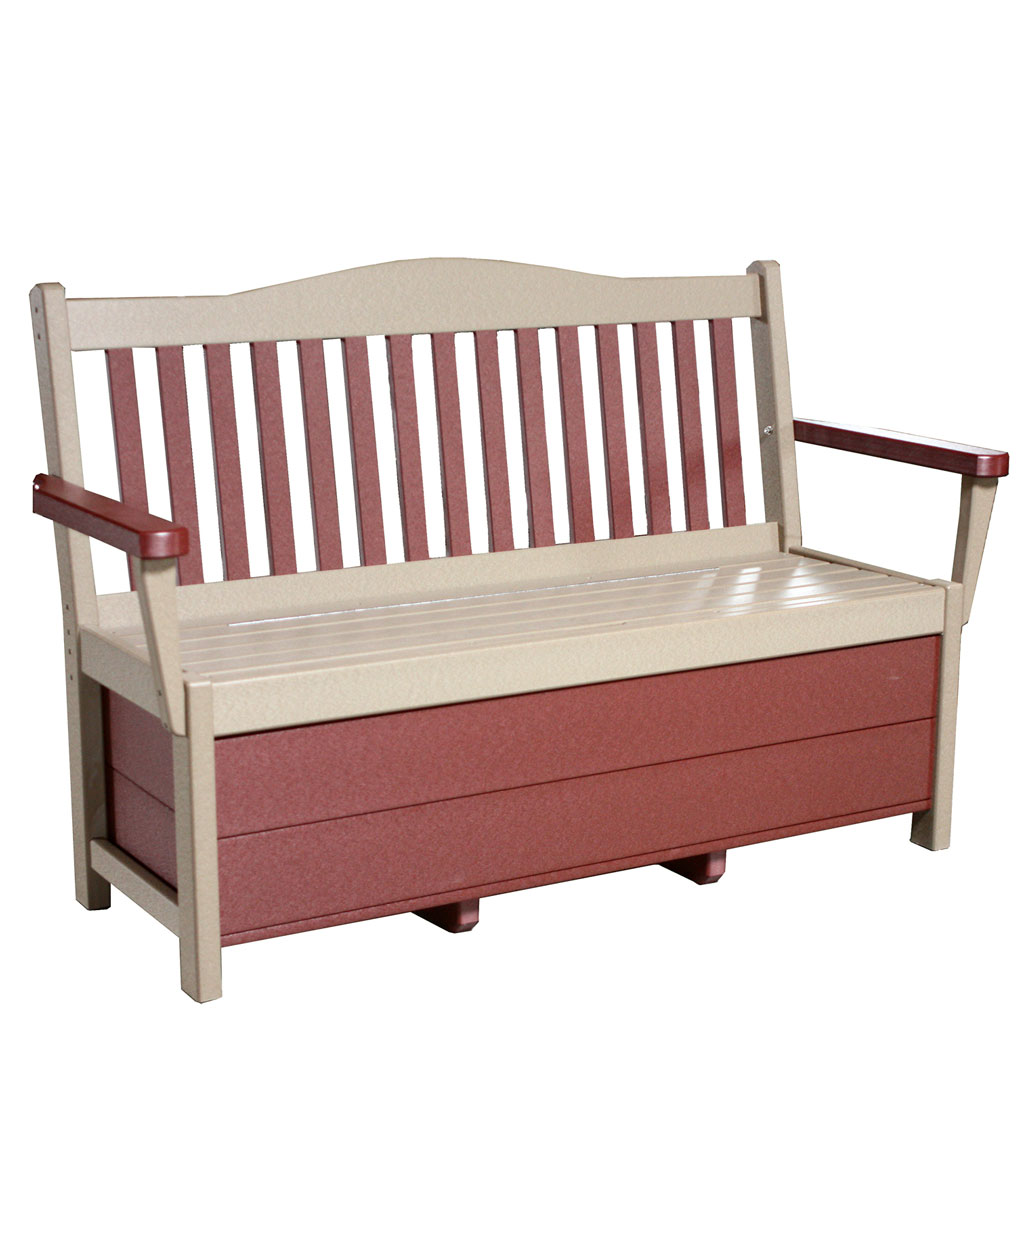 Poly Mission Bench With Storage Amish Direct Furniture